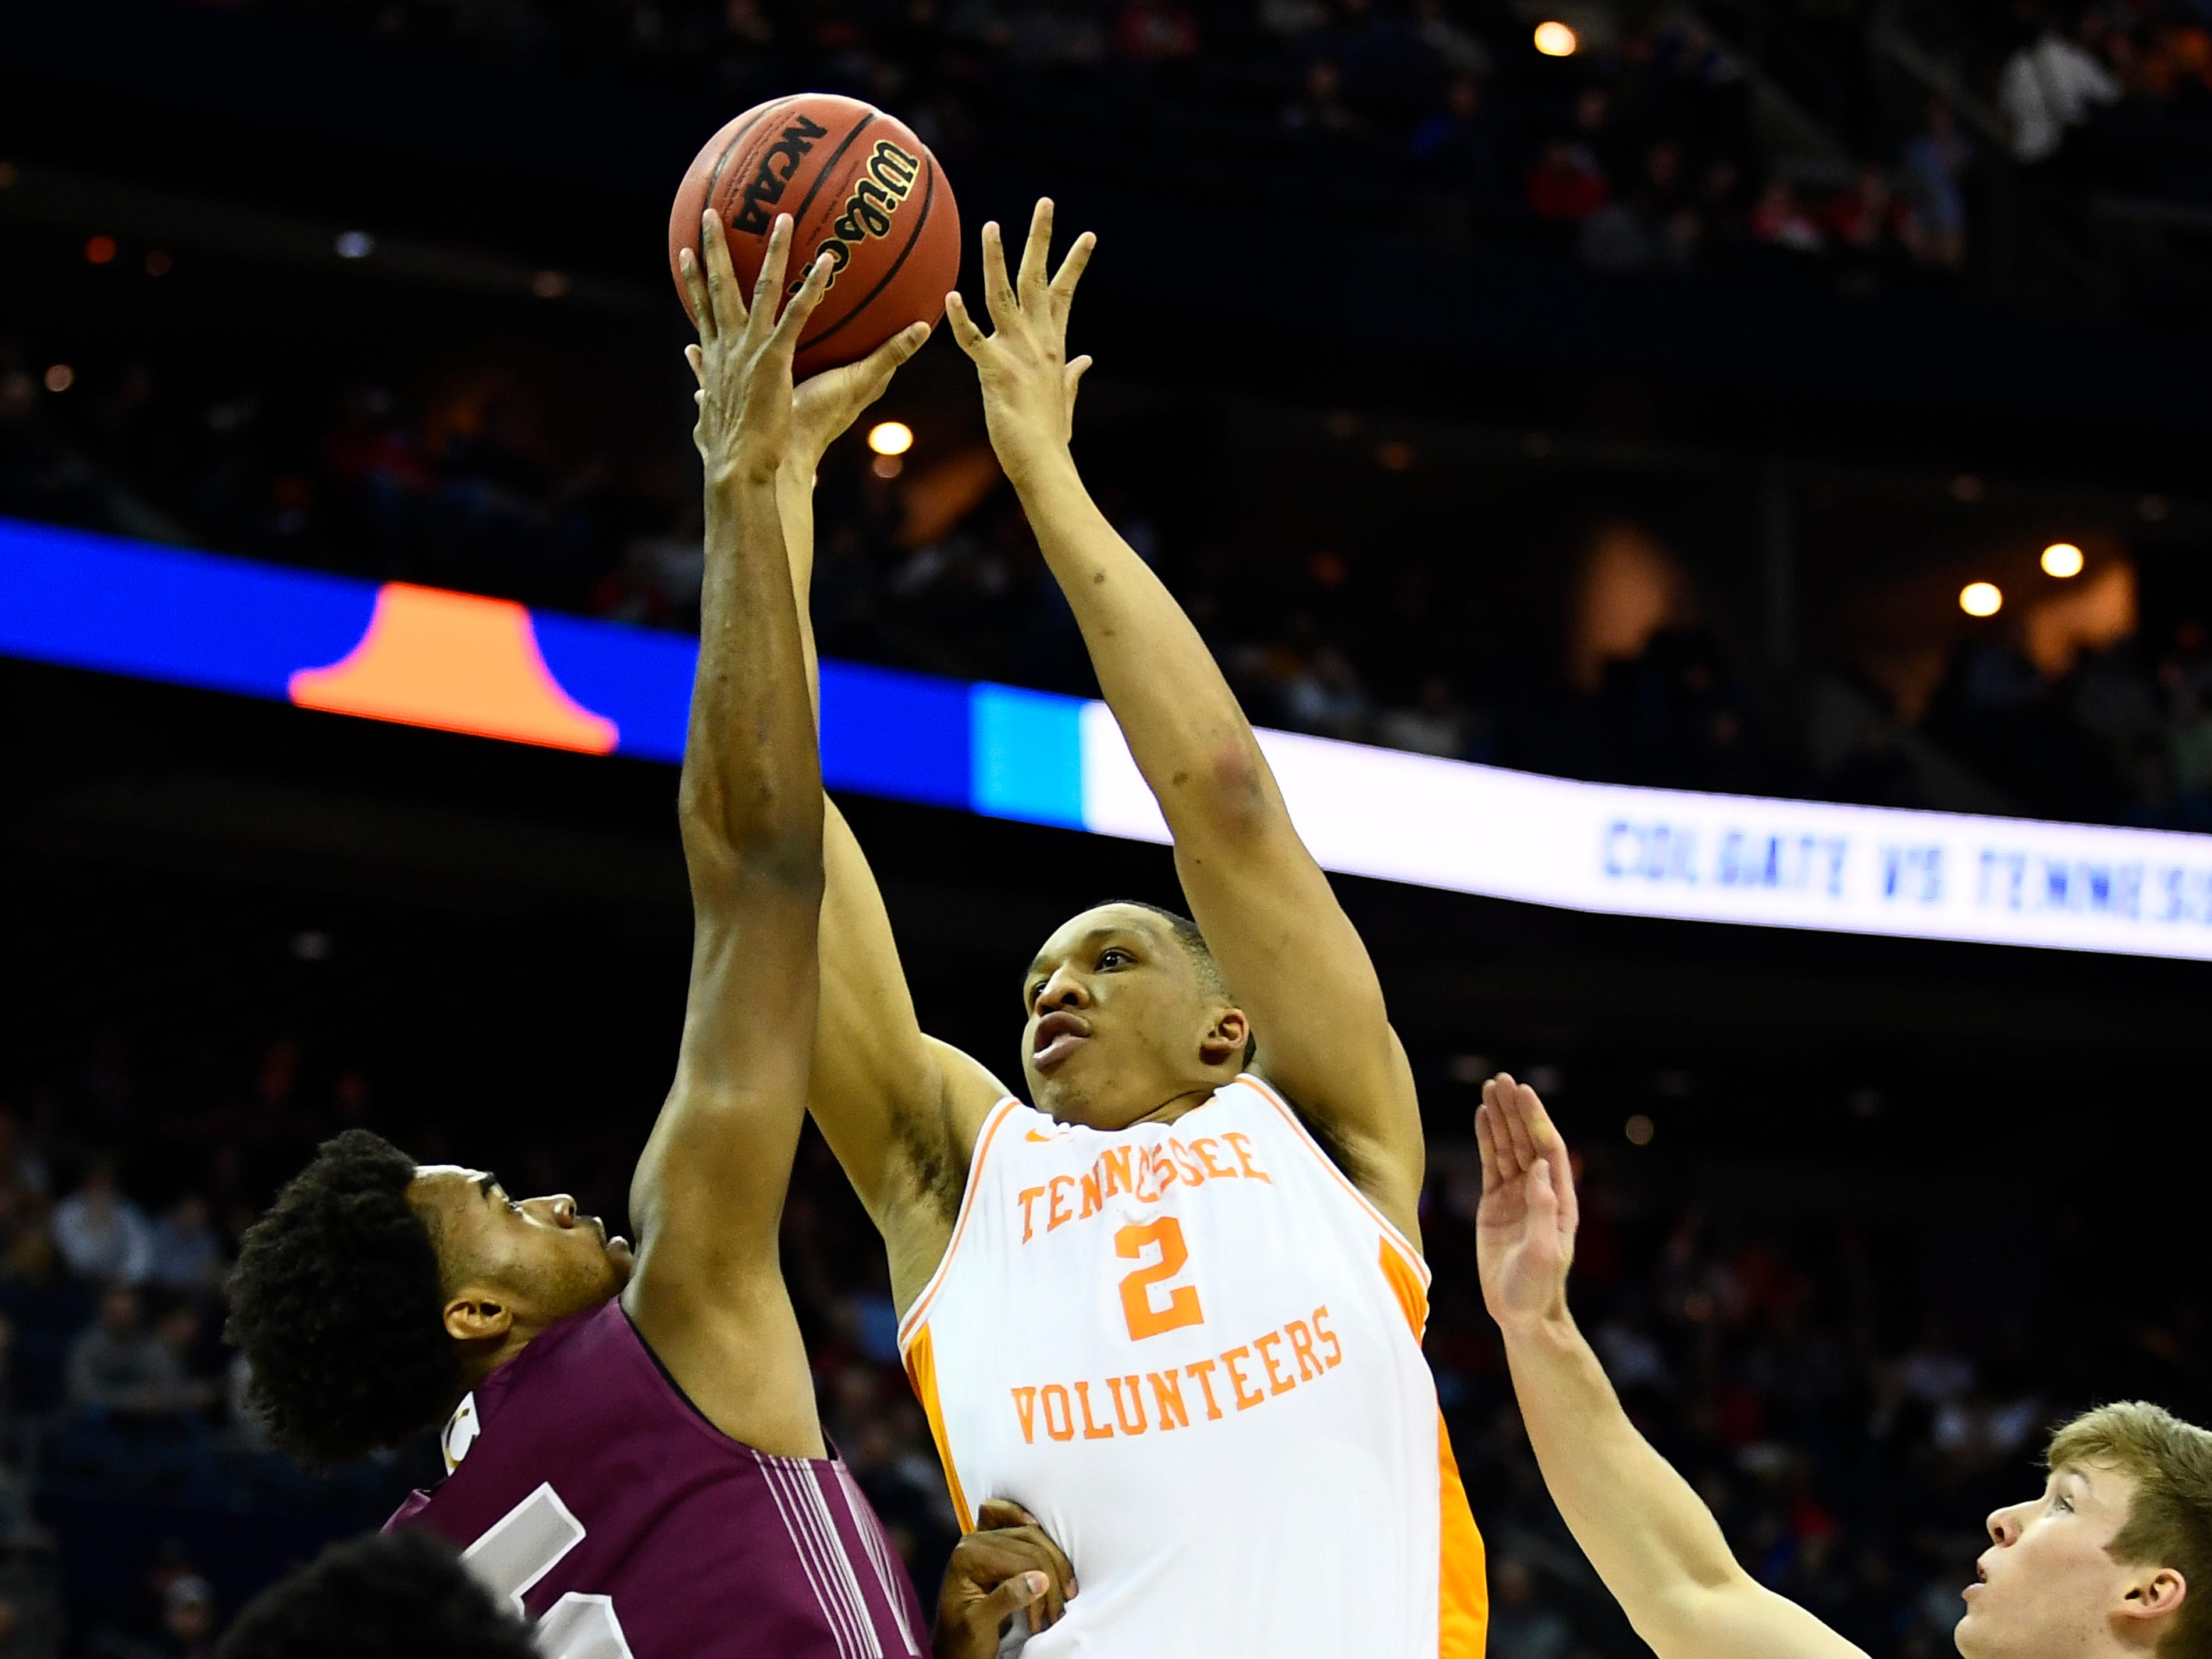 Colgate forward Malcolm Regisford (5) blocks a shot by Tennessee forward Grant Williams (2) during their first round game of the NCAA Tournament at Nationwide Arena in Columbus, Ohio, on Friday, March 22, 2019.